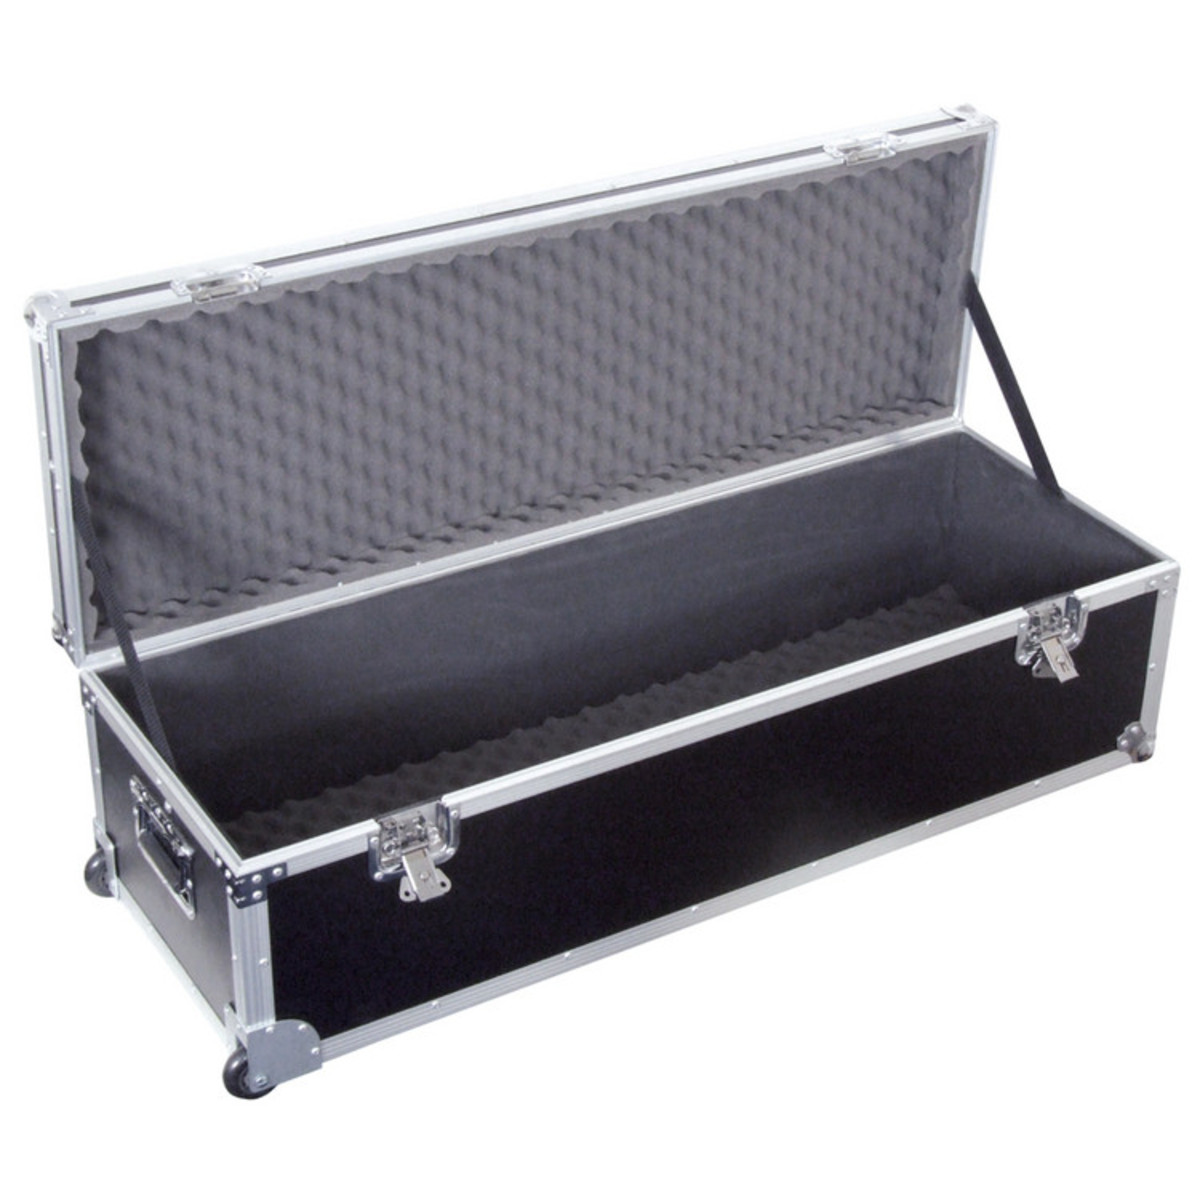 electrovision equipment stands flight case trunk at. Black Bedroom Furniture Sets. Home Design Ideas